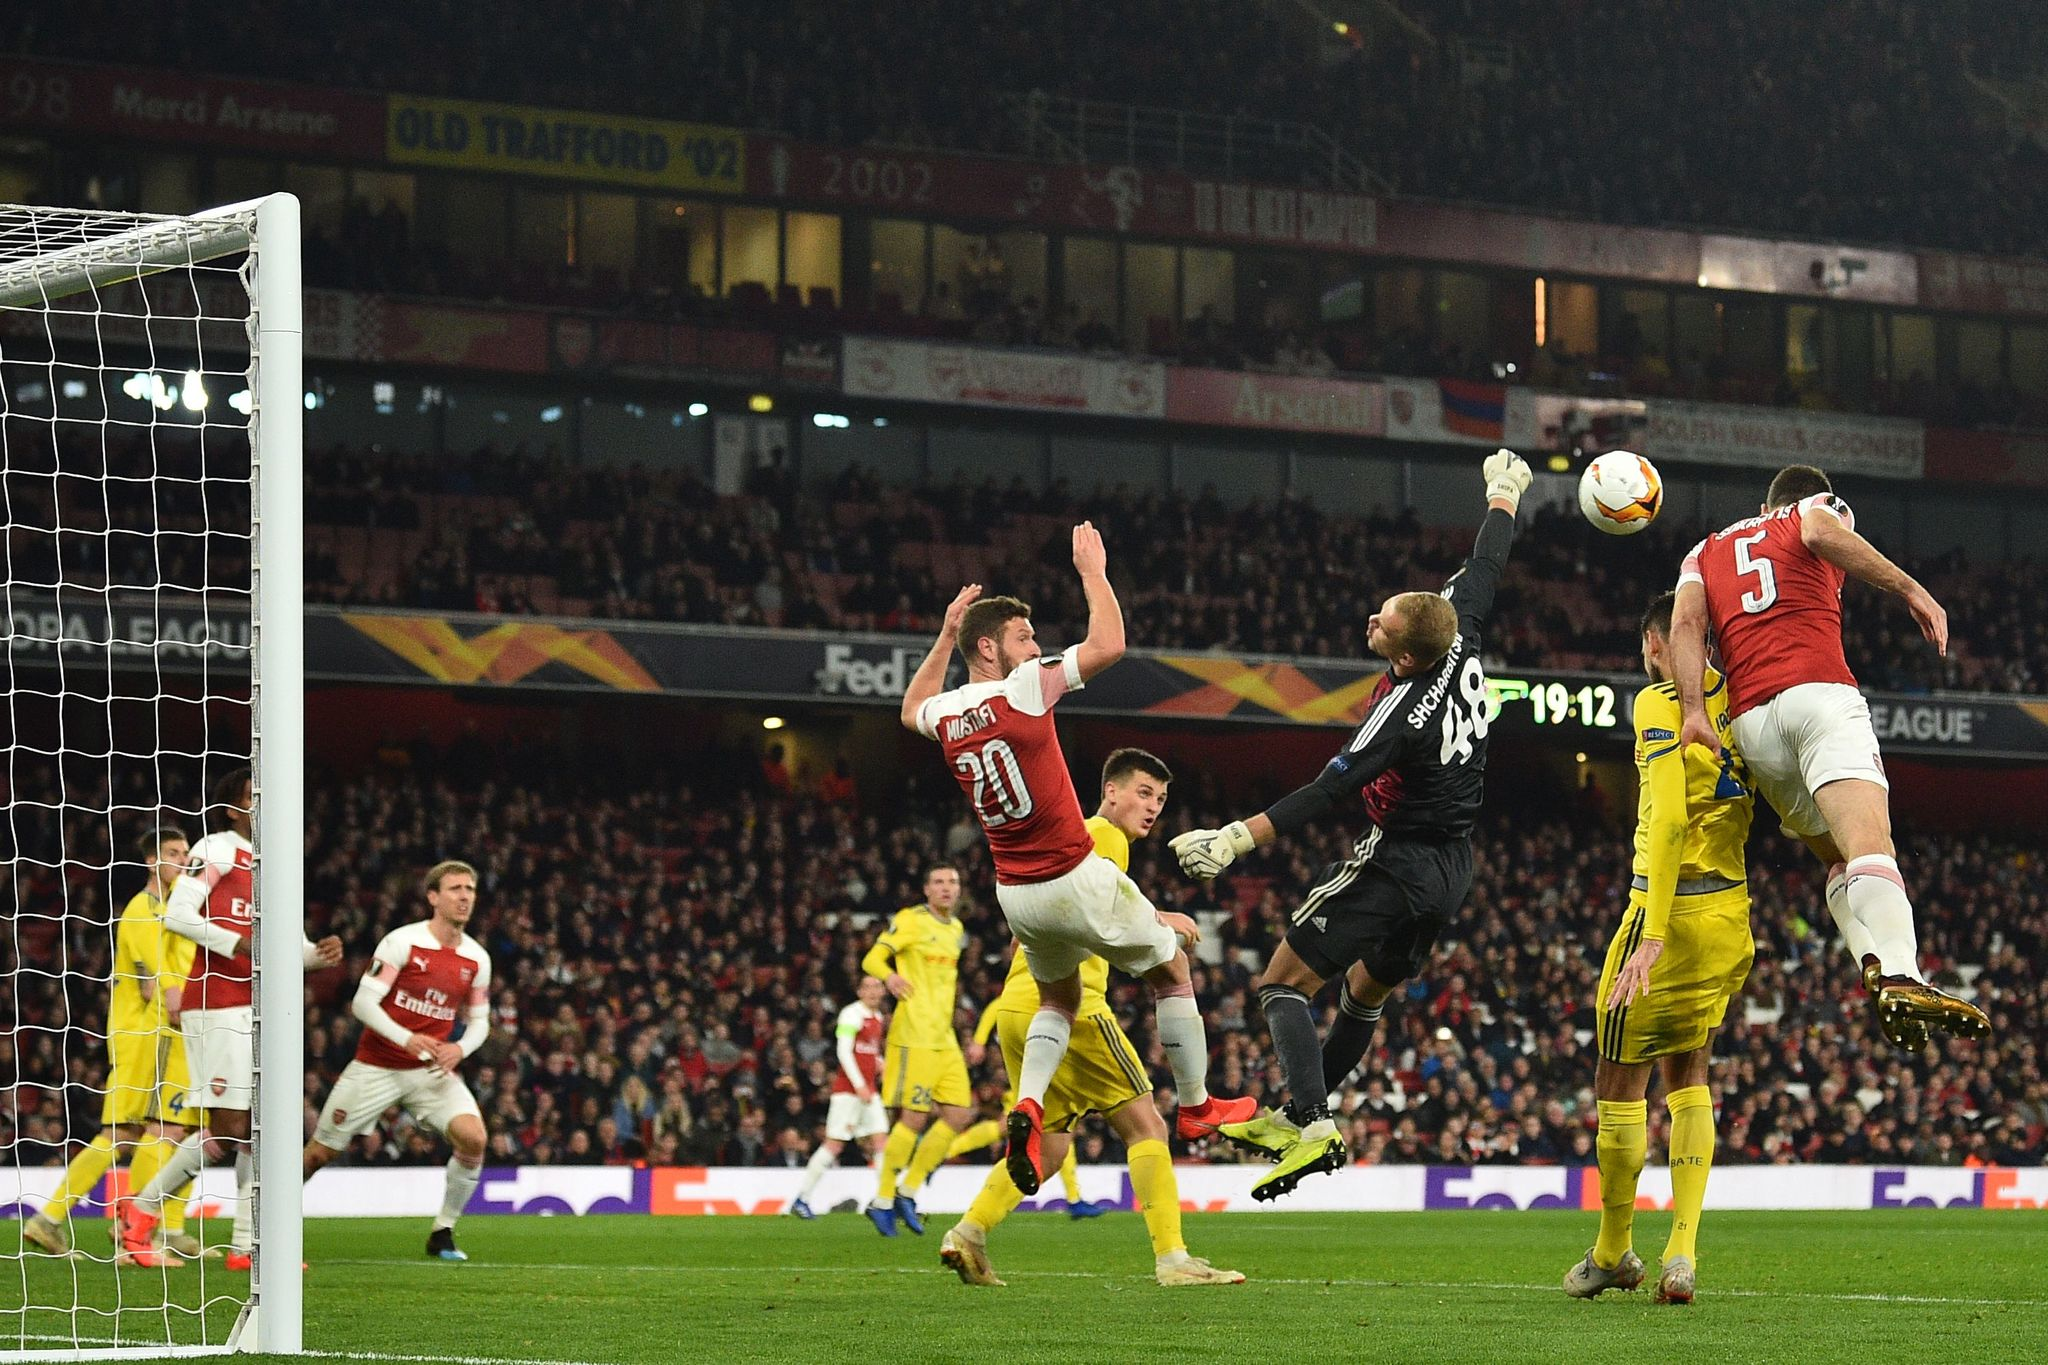 Arsenals Greek defender Sokratis Papastathopoulos (R) jumps to head home their third goal during the UEFA Europa League round of 32, 2nd leg football match between Arsenal and <HIT>Bate</HIT> Borisov at the Emirates stadium in London on February 21, 2019. (Photo by Glyn KIRK / AFP)